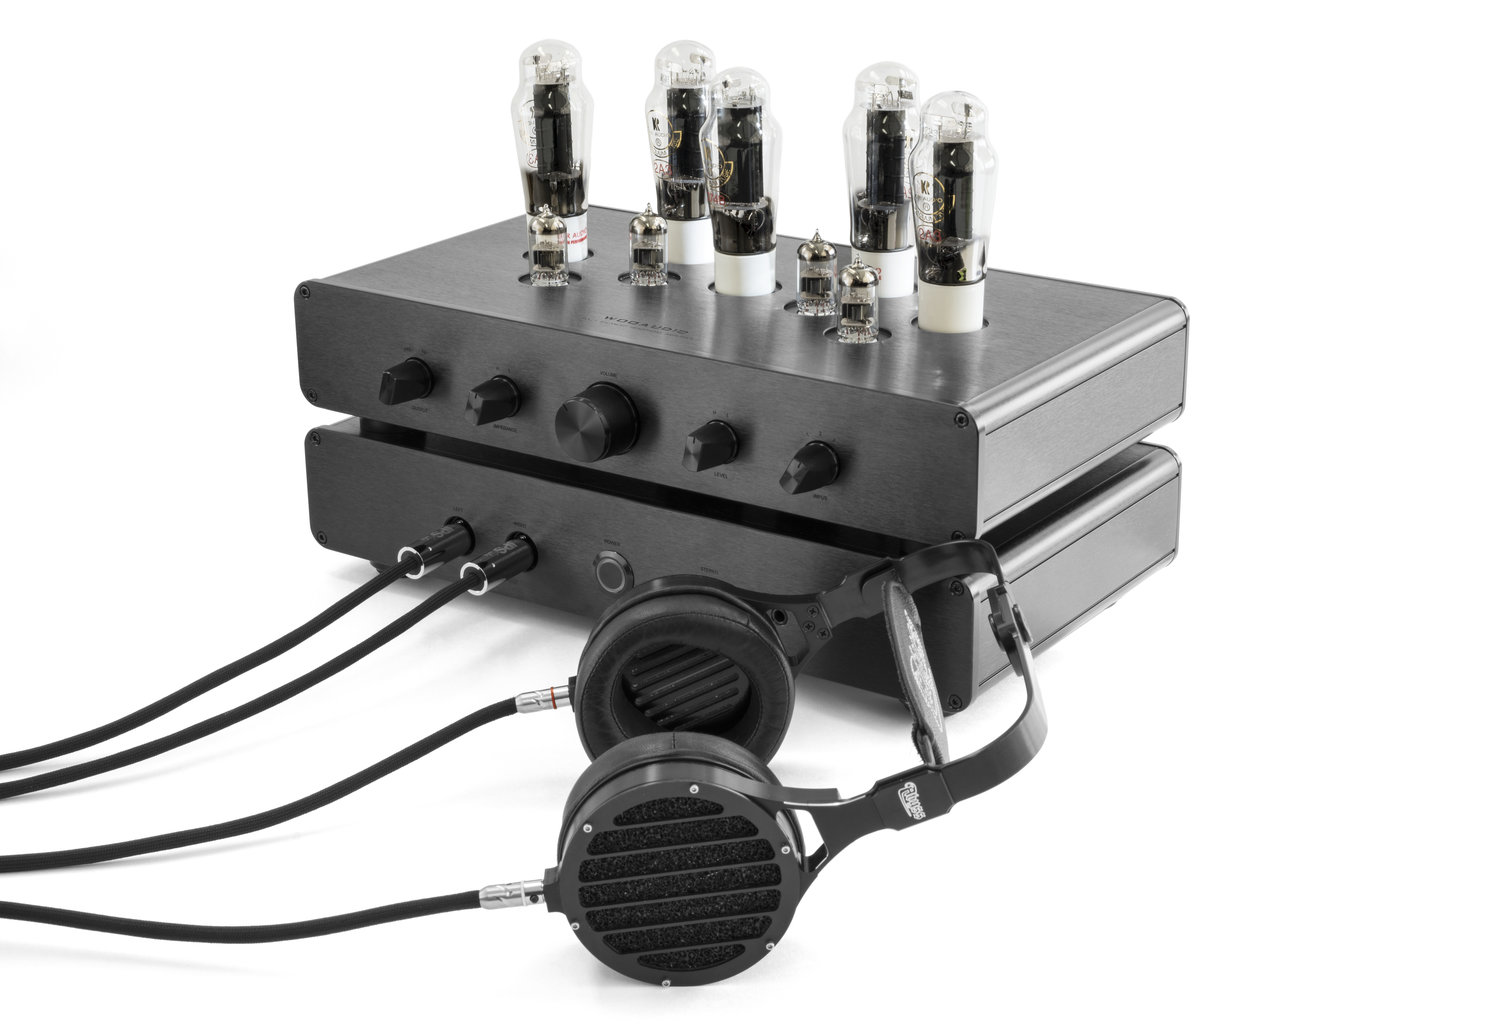 WA33 with upgrade tubes shown. Abyss AB-1266 headphones sold seperately.